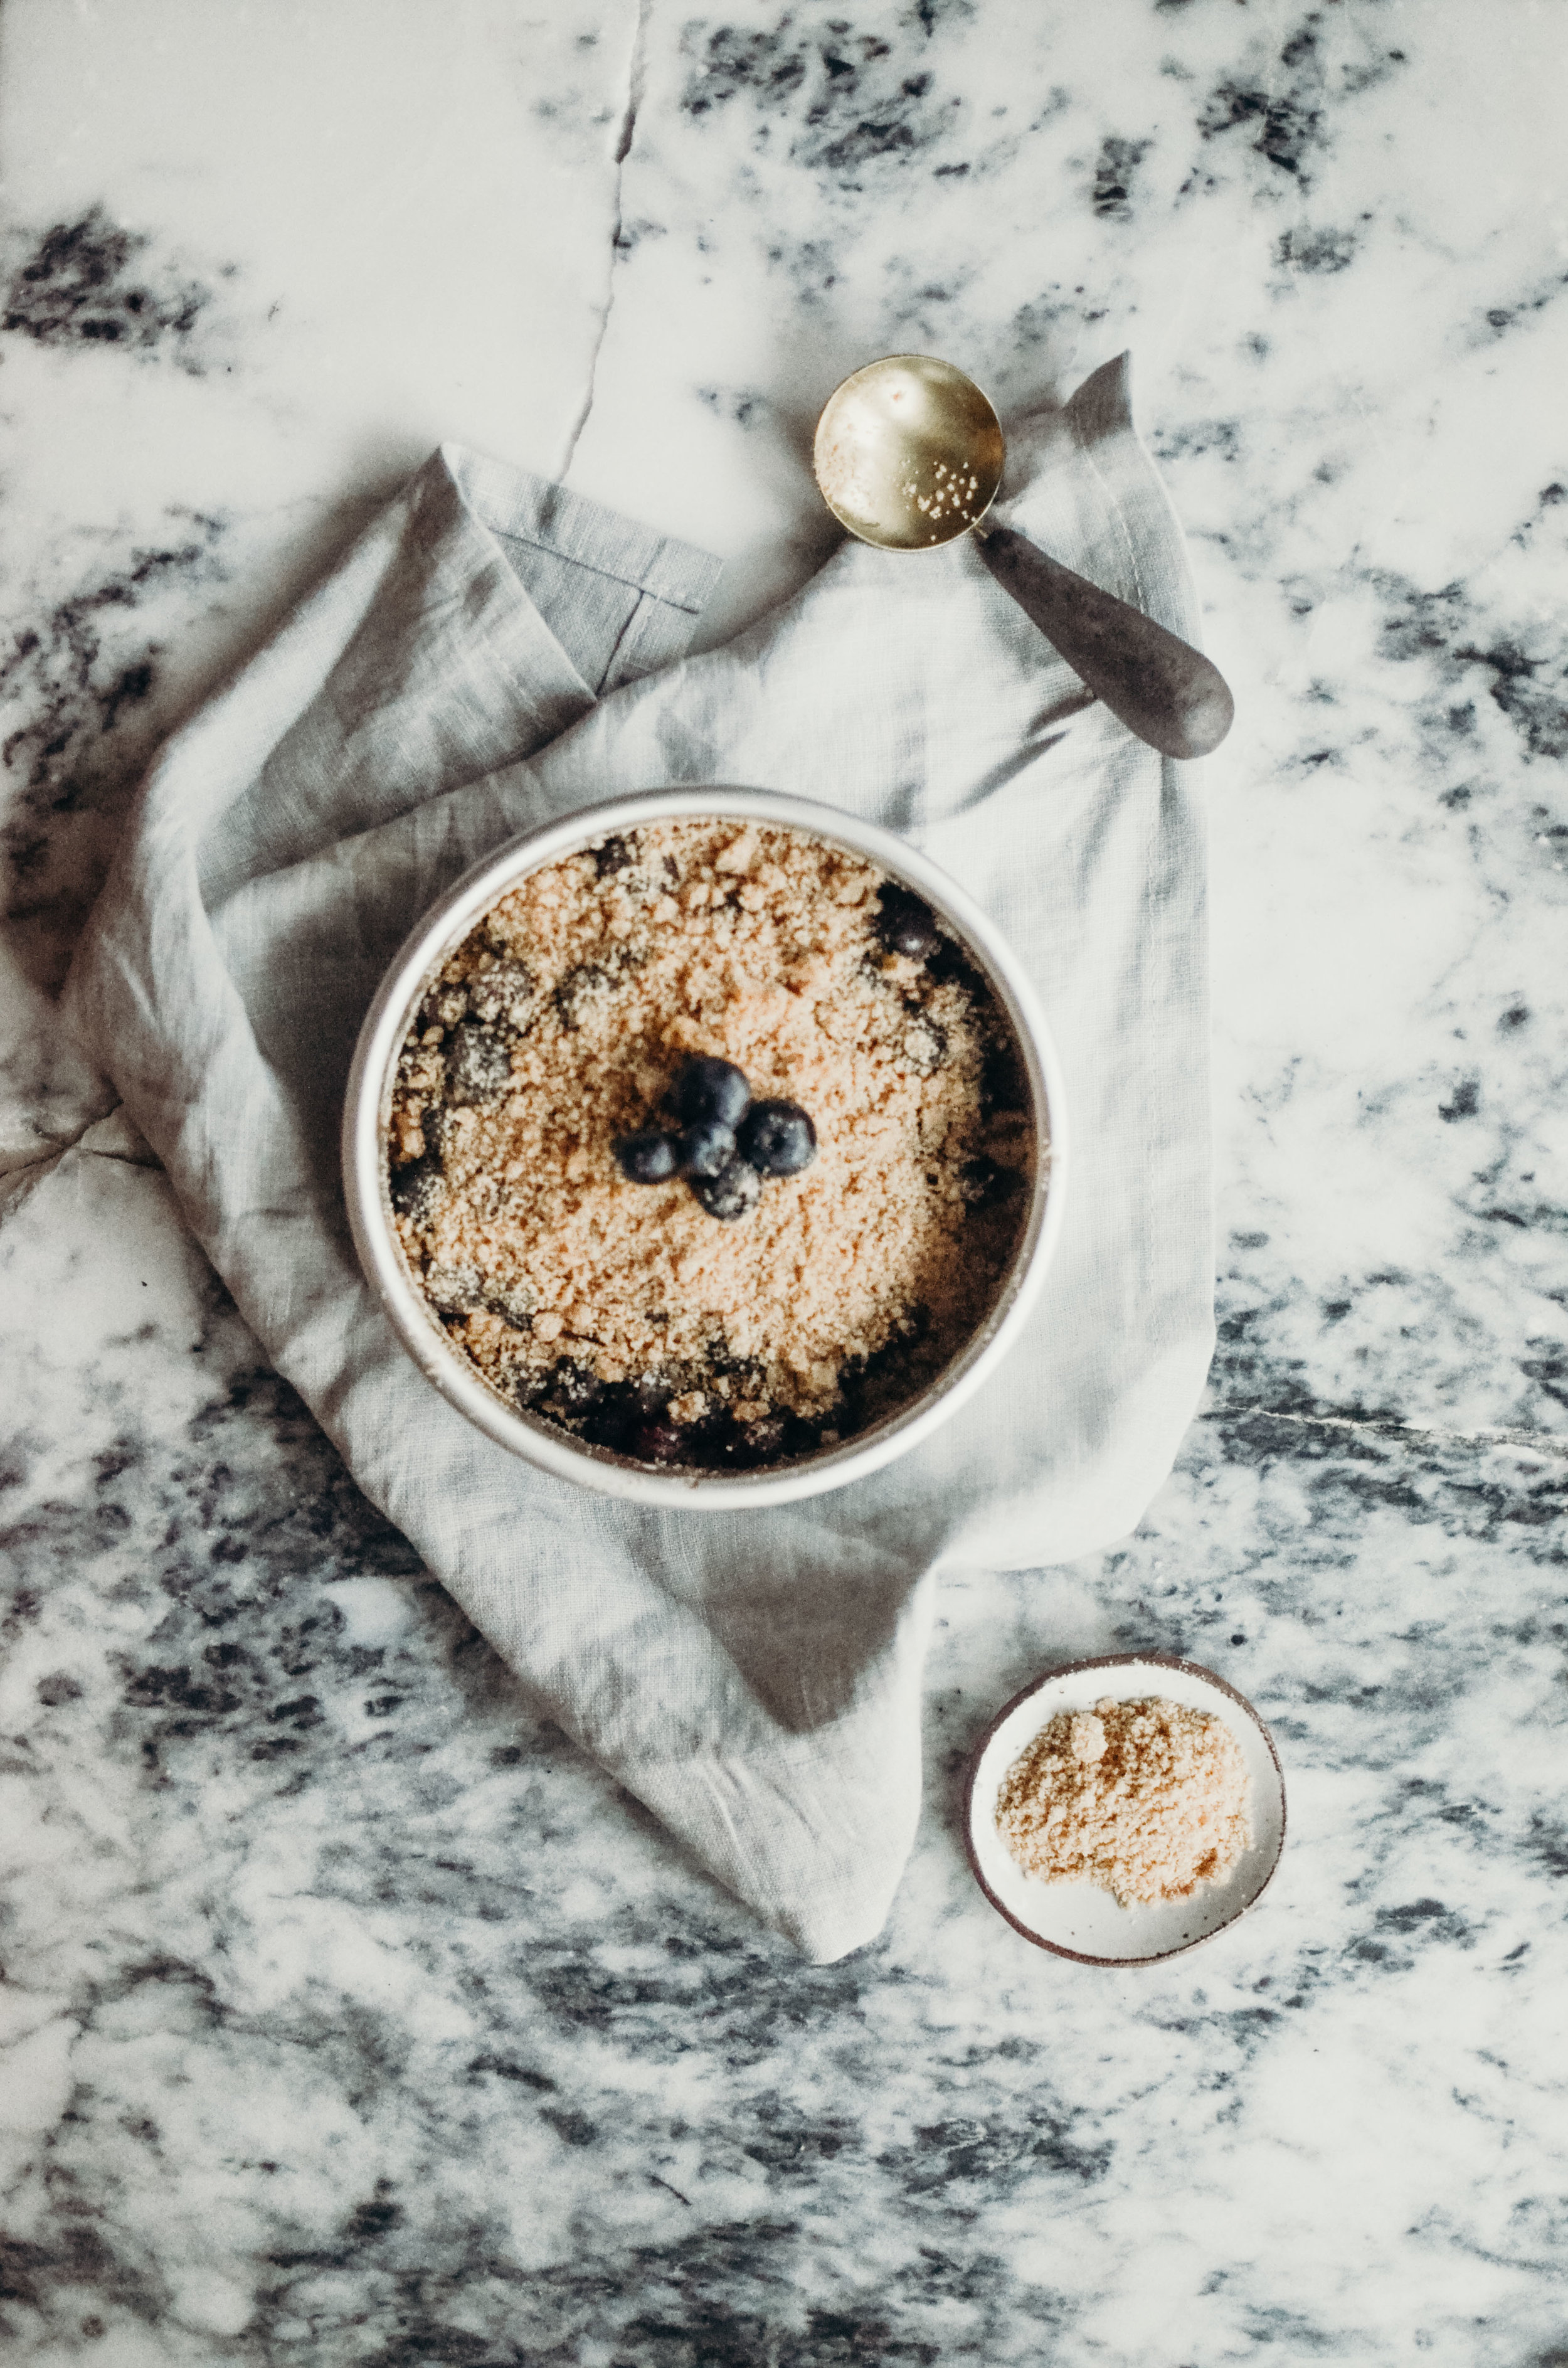 Wendling_Boyd_Terra_Square_Farmers_Market_bblueberry_Crumble-2.jpg